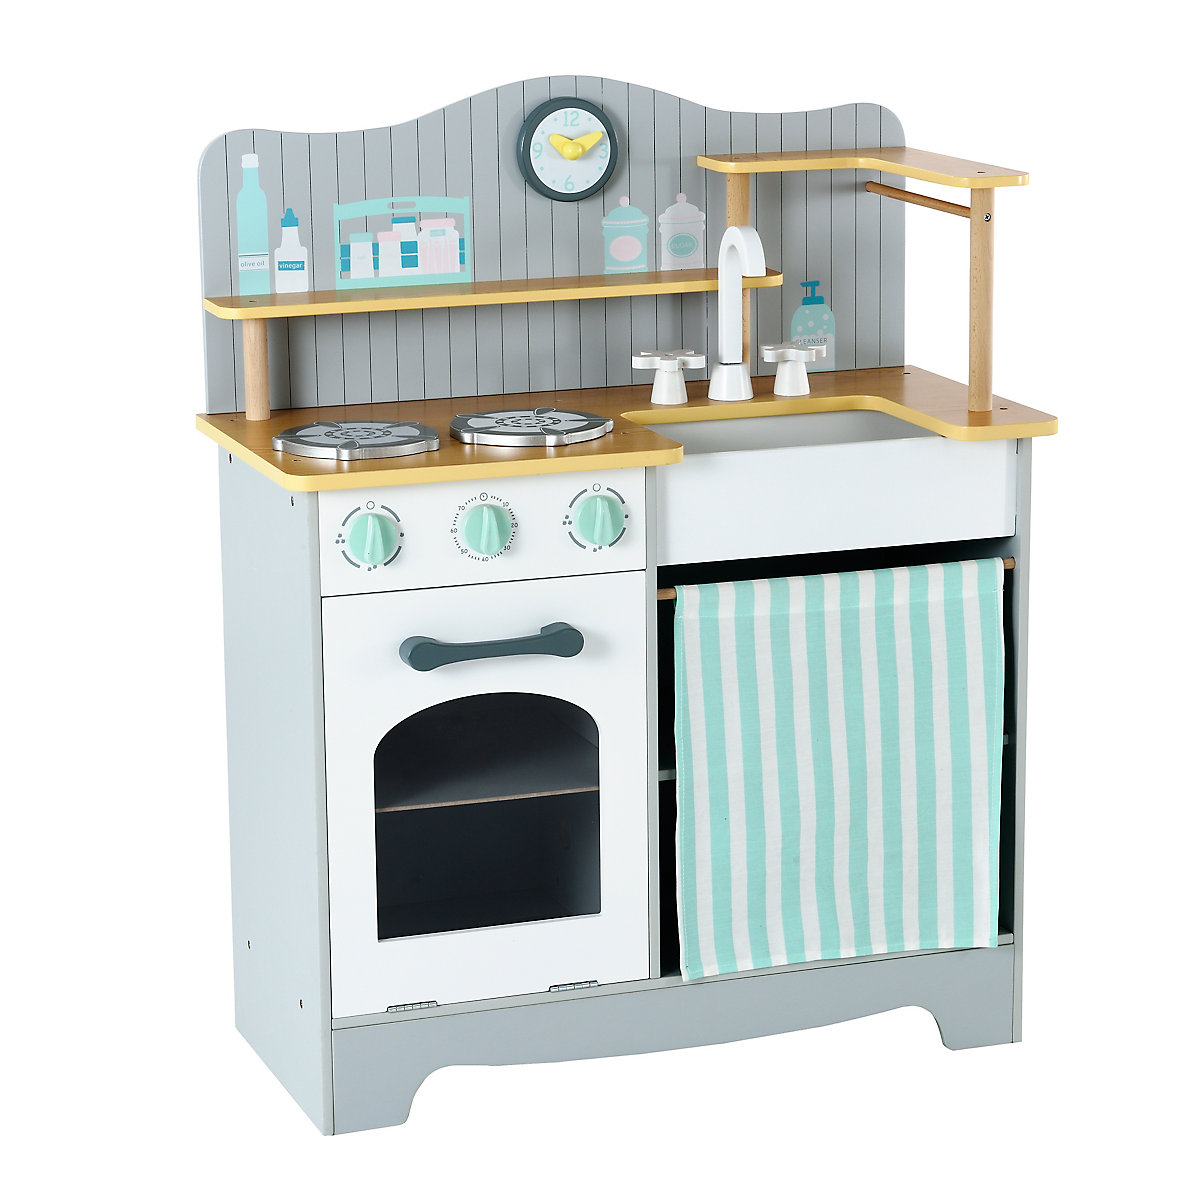 NEW ELC WOODEN Classic Kitchen Toy From 3 Years